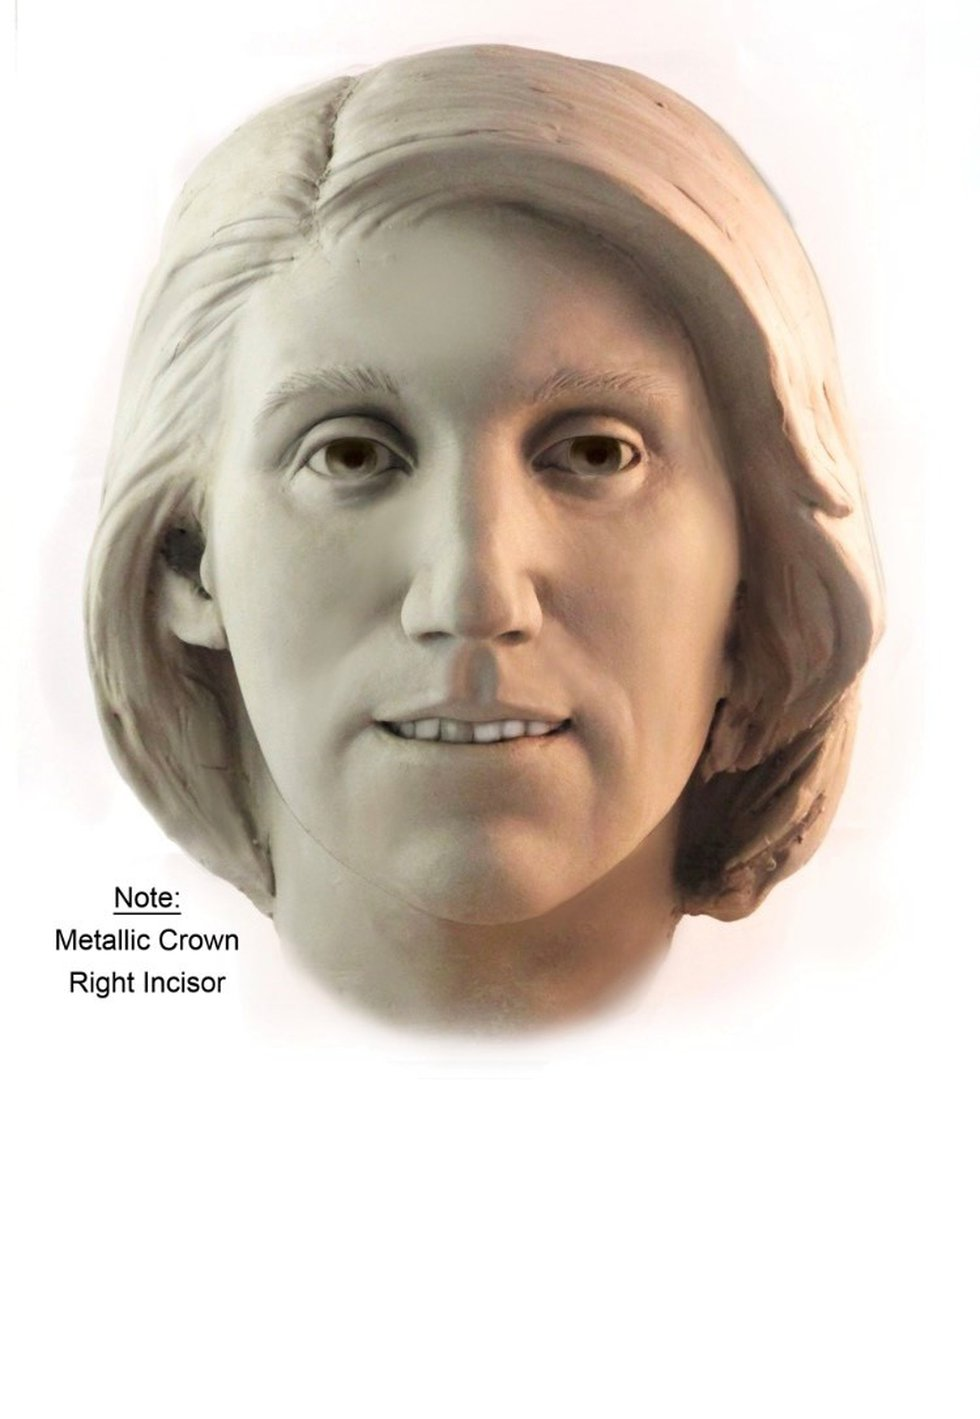 In 2012, cold case investigators uploaded this image of Vancleave's Jane Doe to NamUS, a...